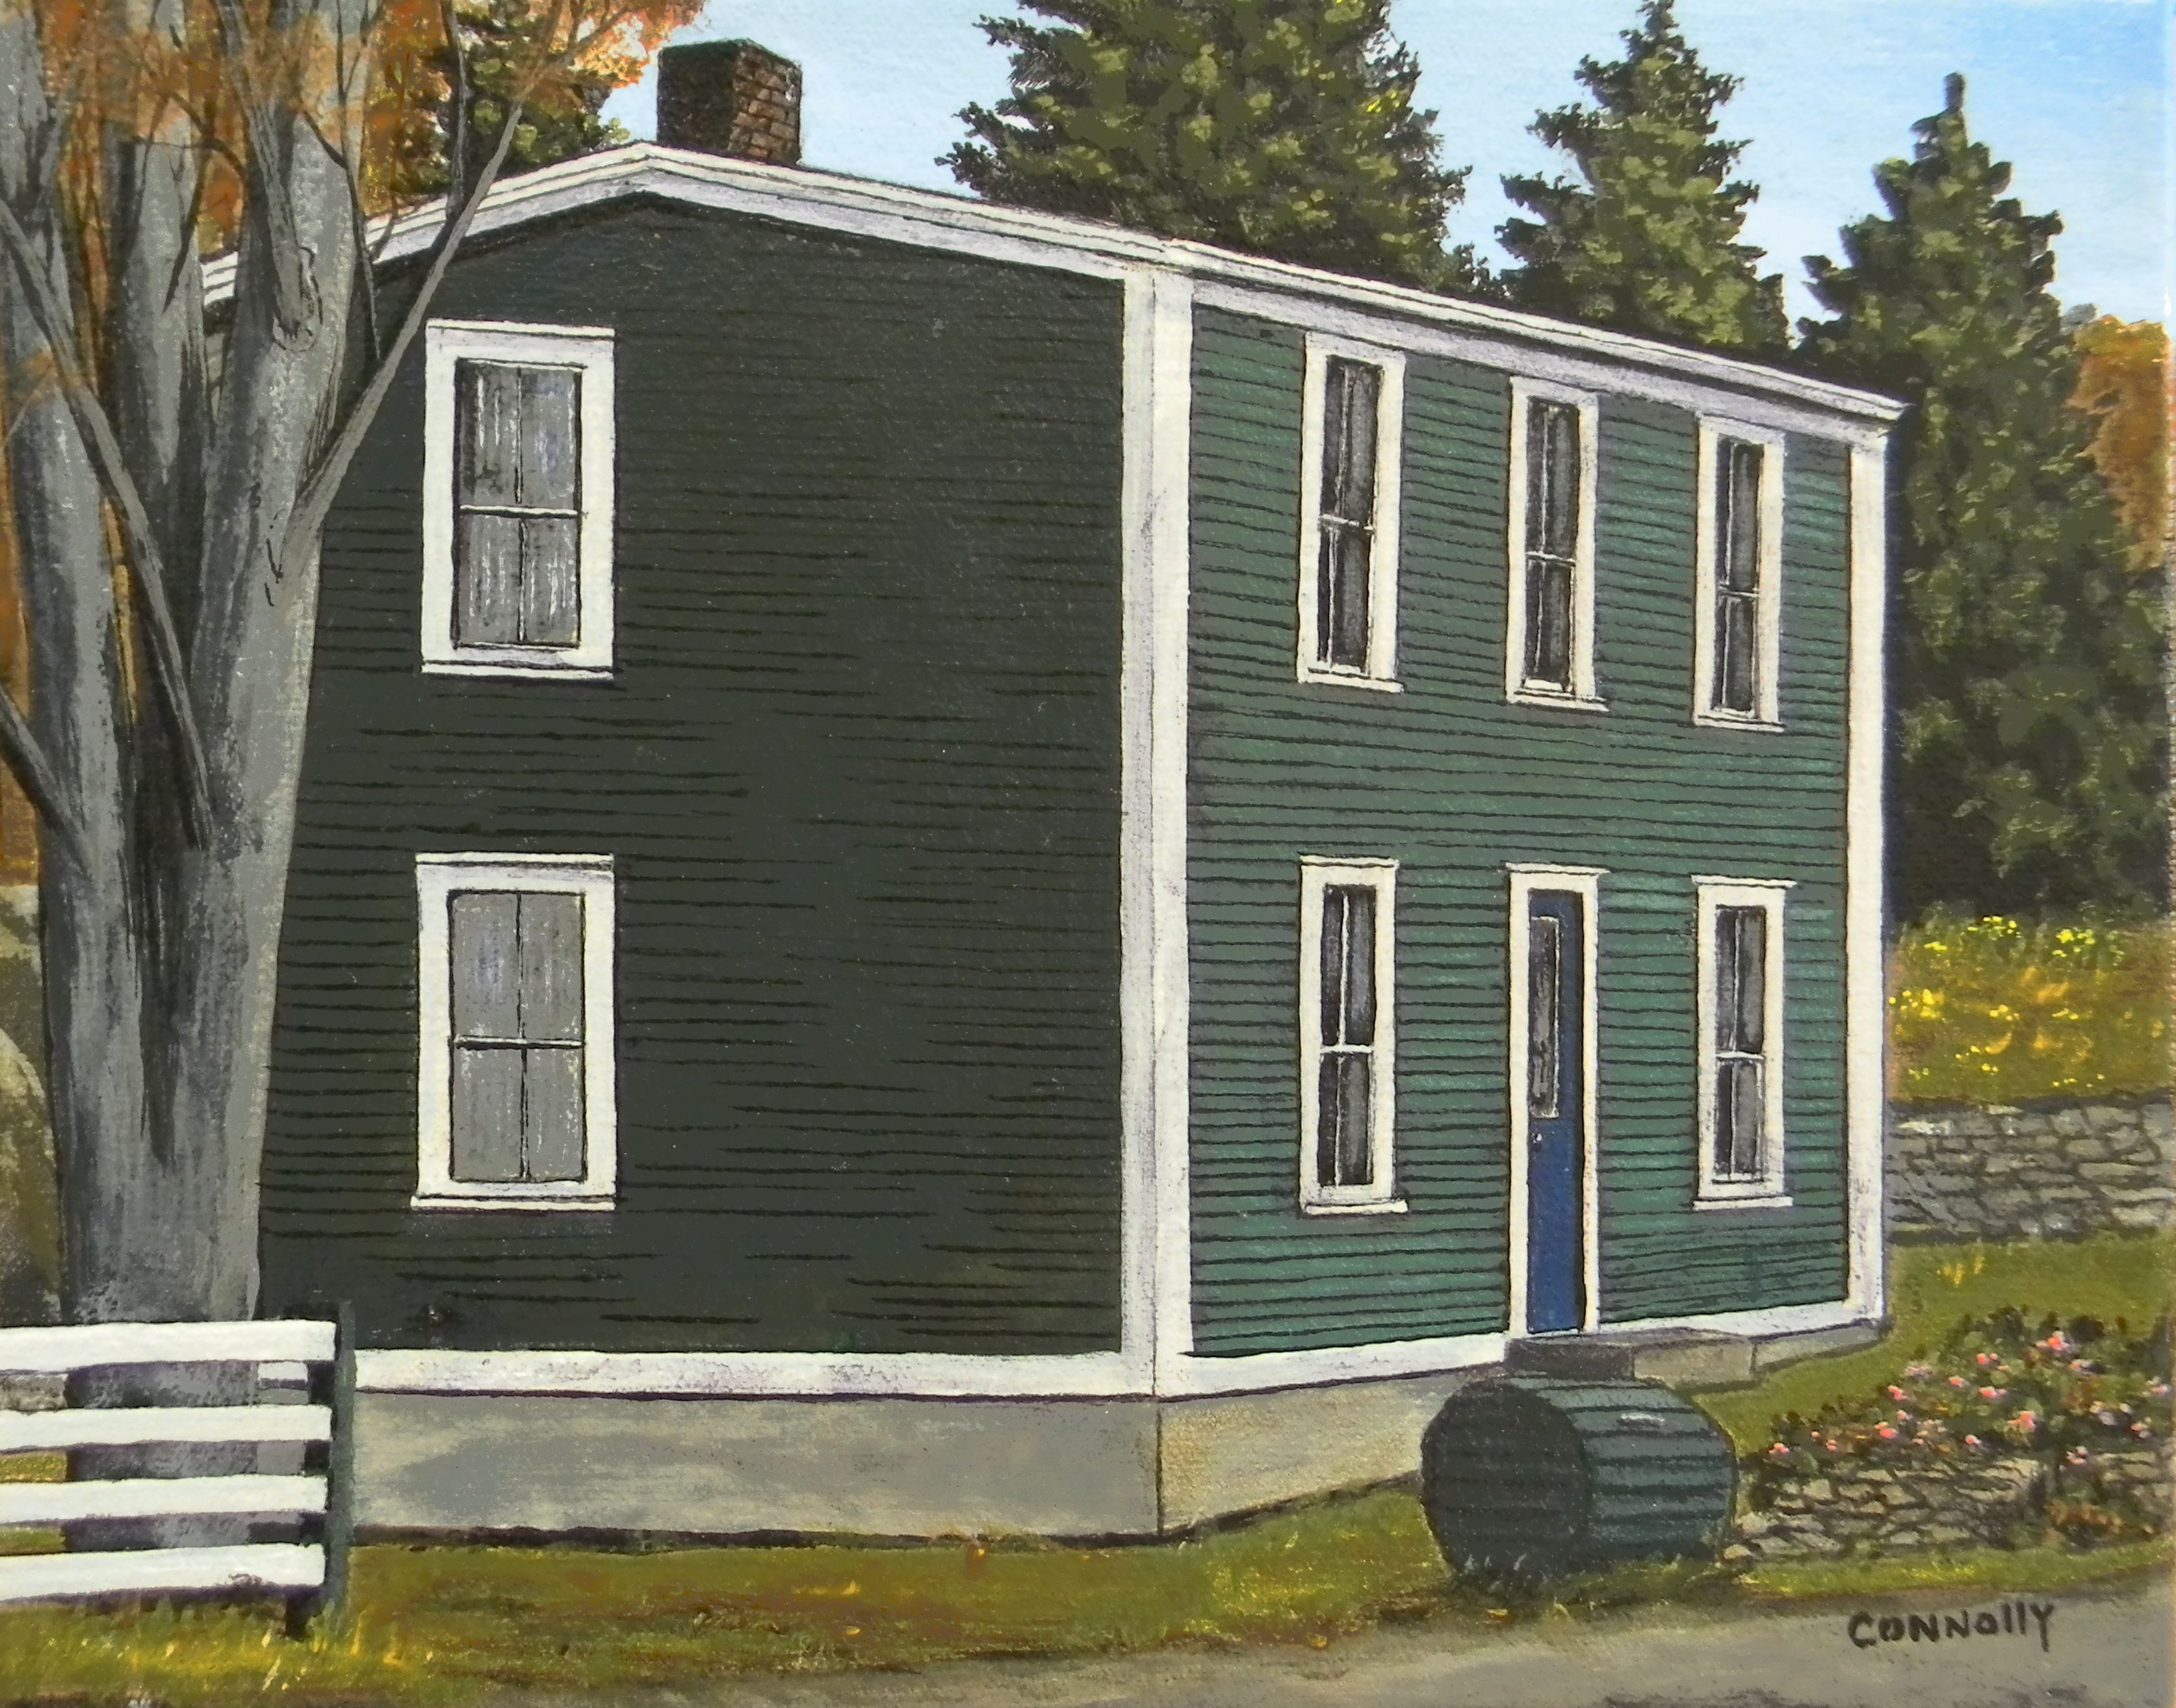 Bob Pinkstone's North St. Cottage